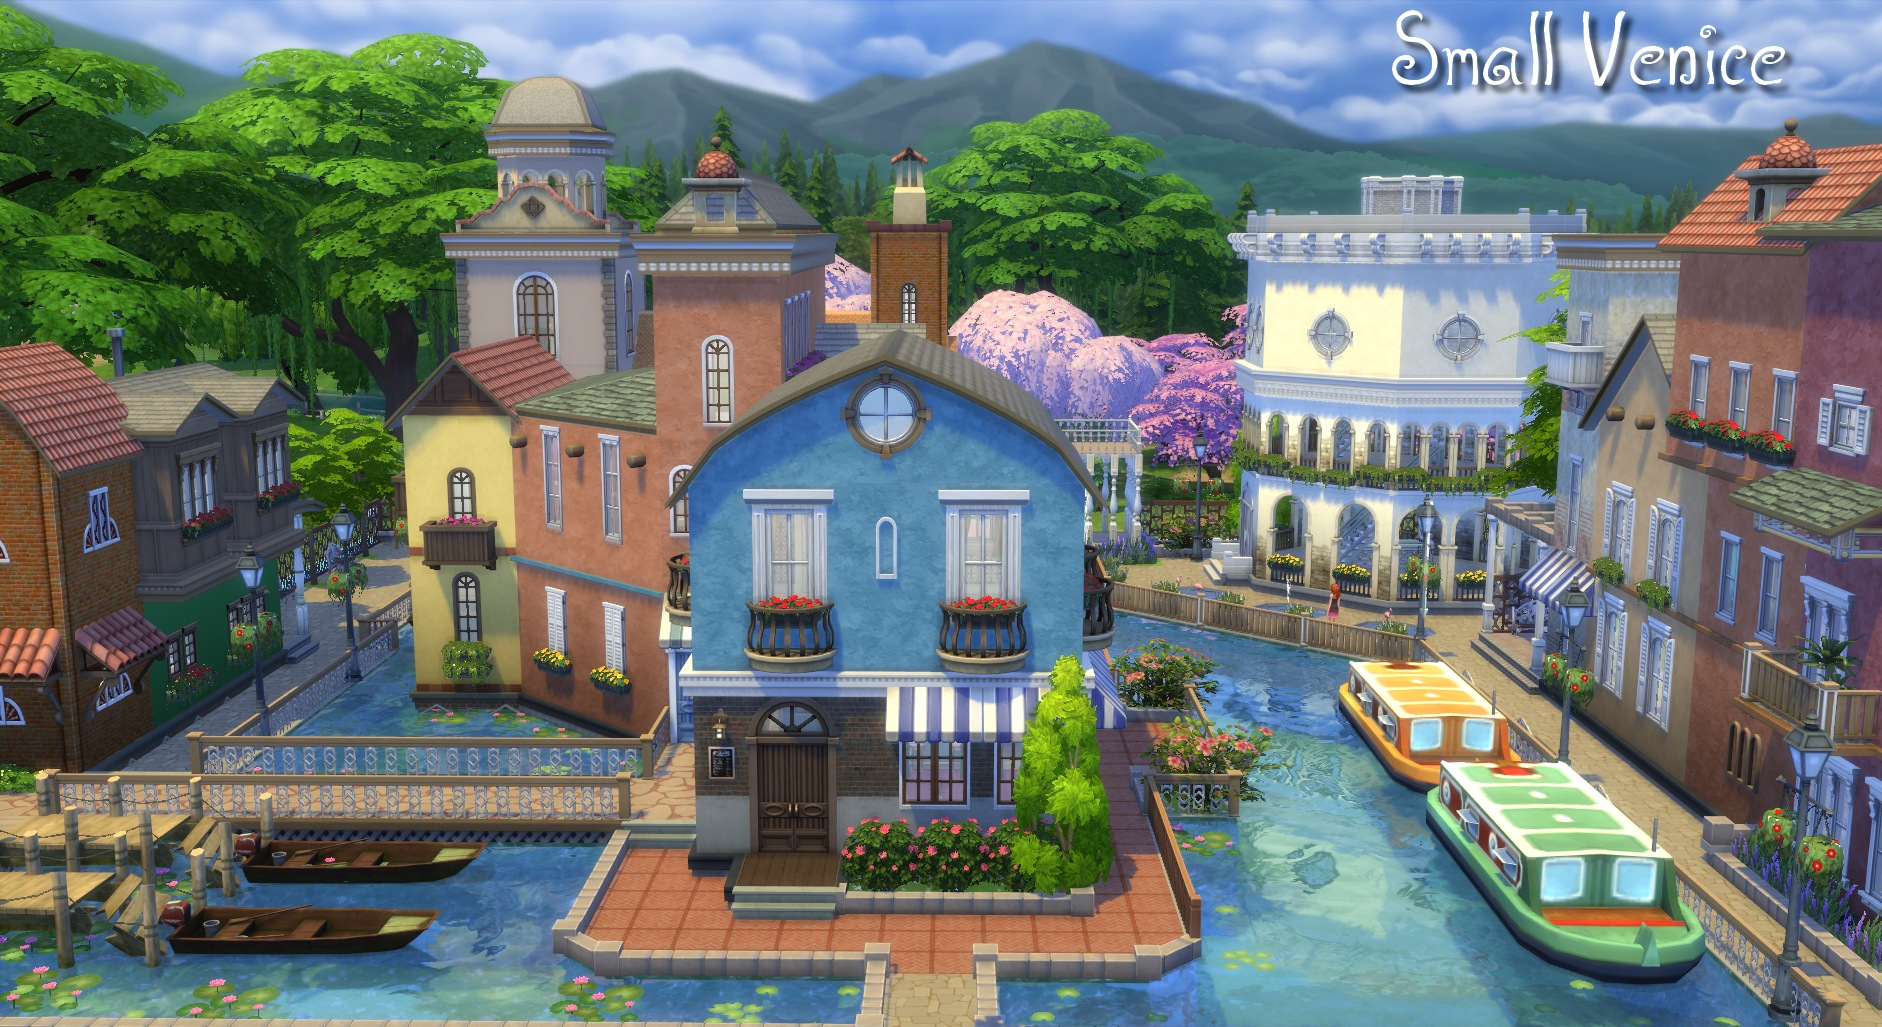 Home Decor In Brooklyn Mod The Sims Small Venice